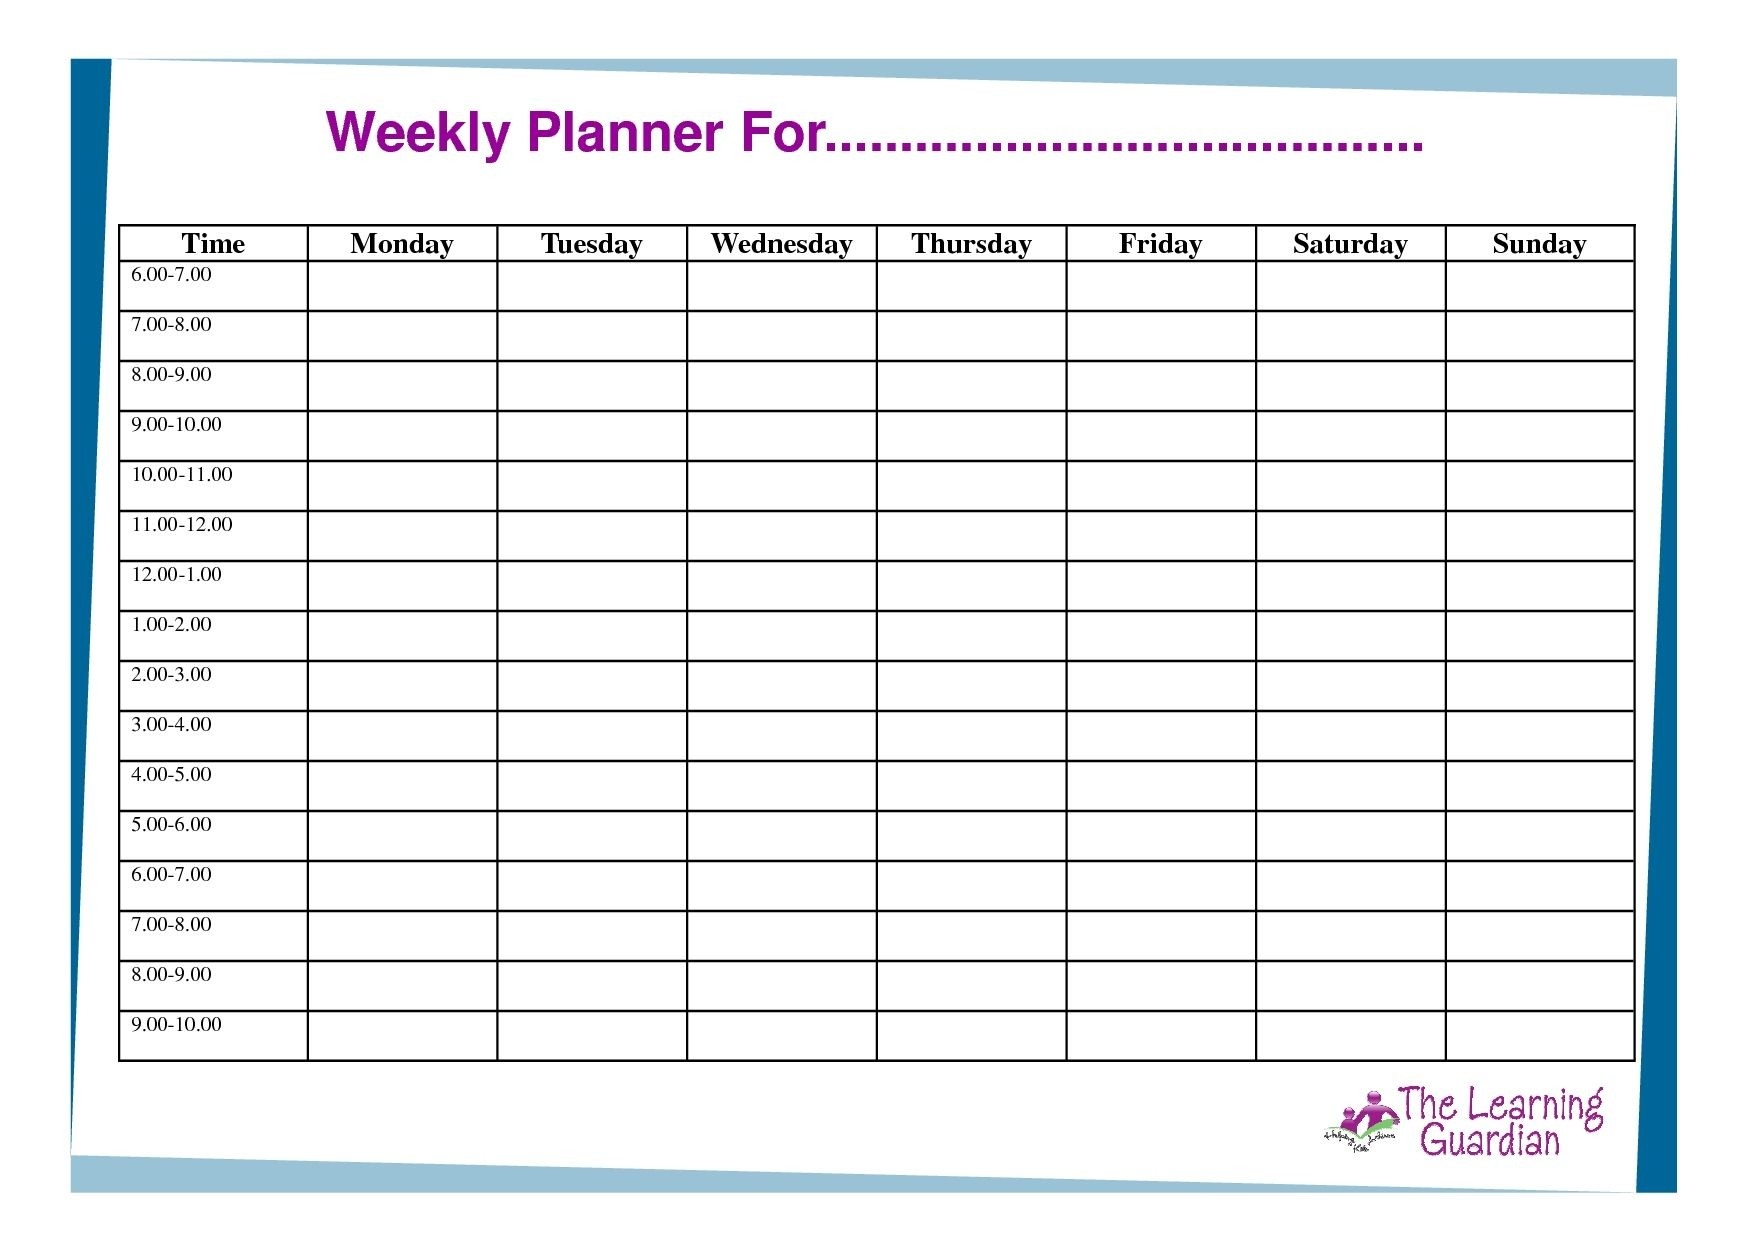 Free Printable Weekly Calendar Templates Planner For Time  7 Day Weekly Planner Template